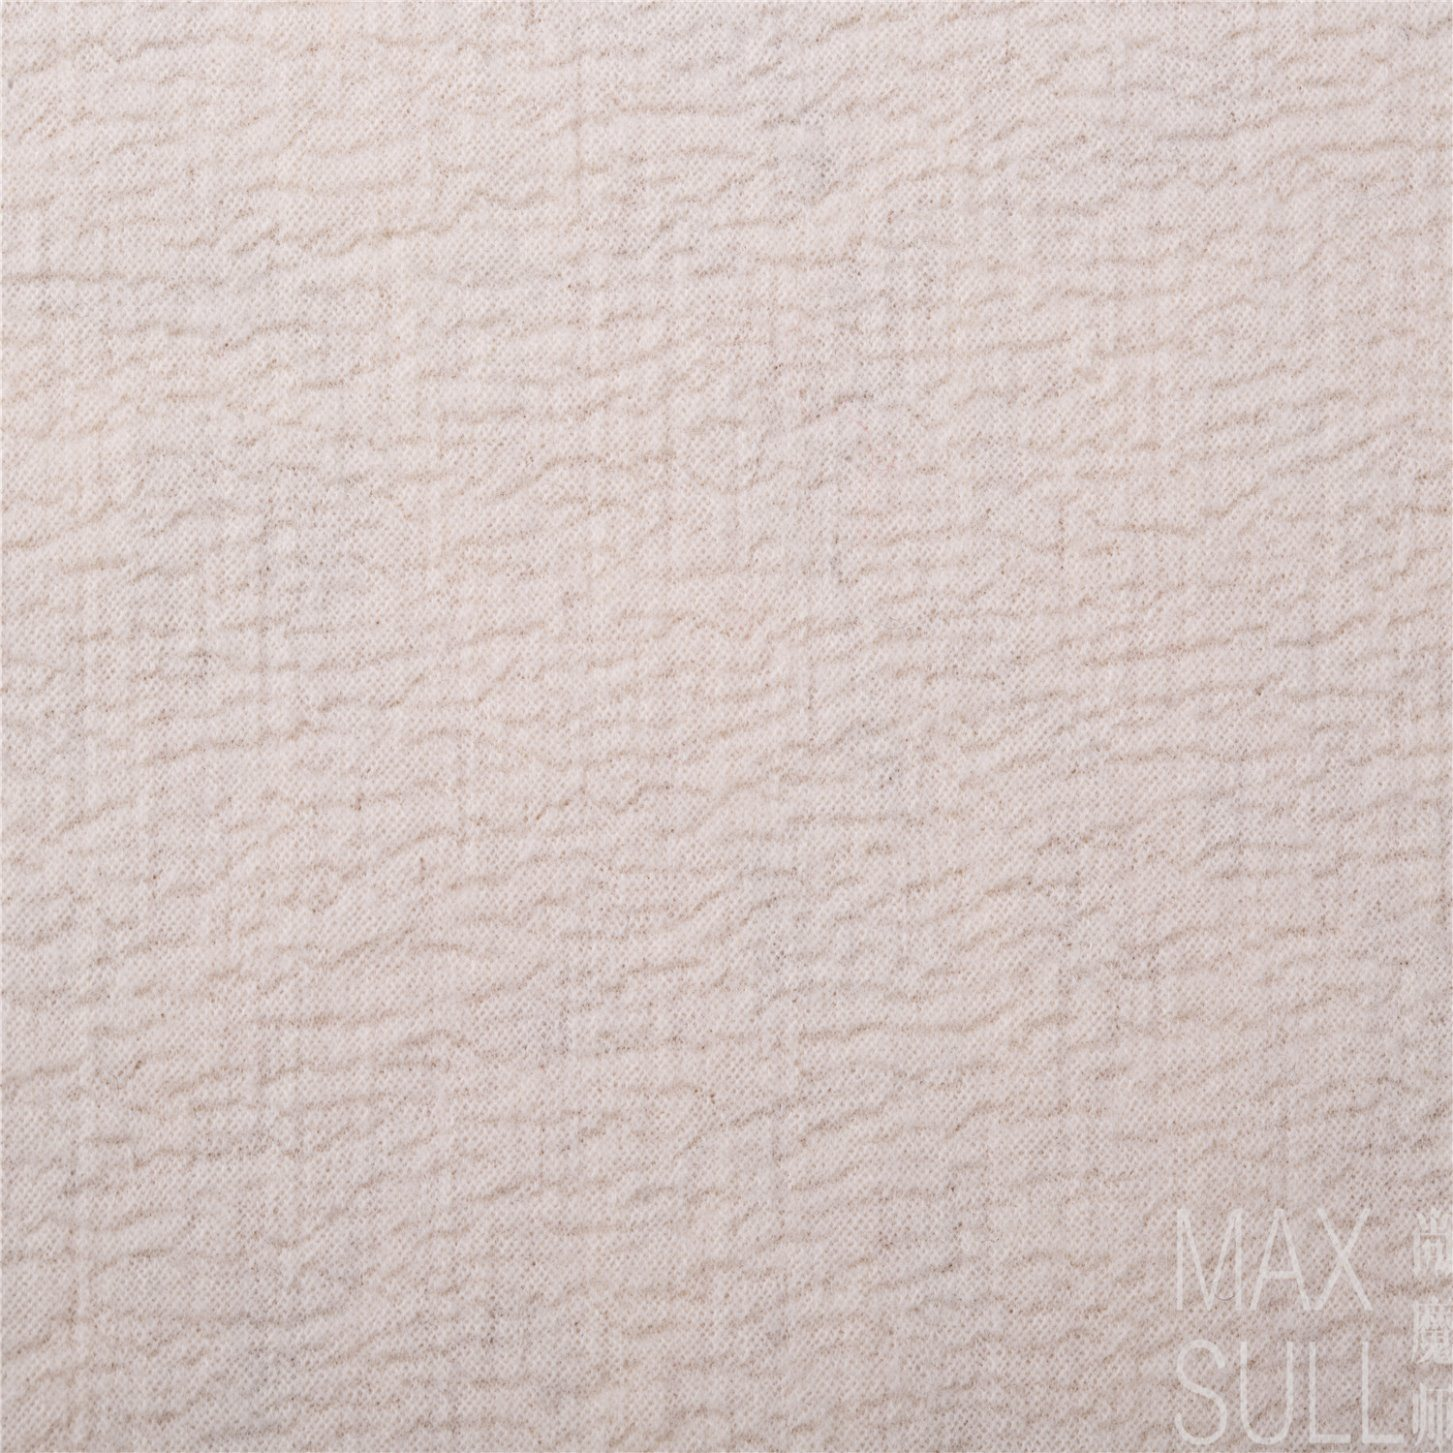 100% Machine Wash Wool Fabric for Autumn in White